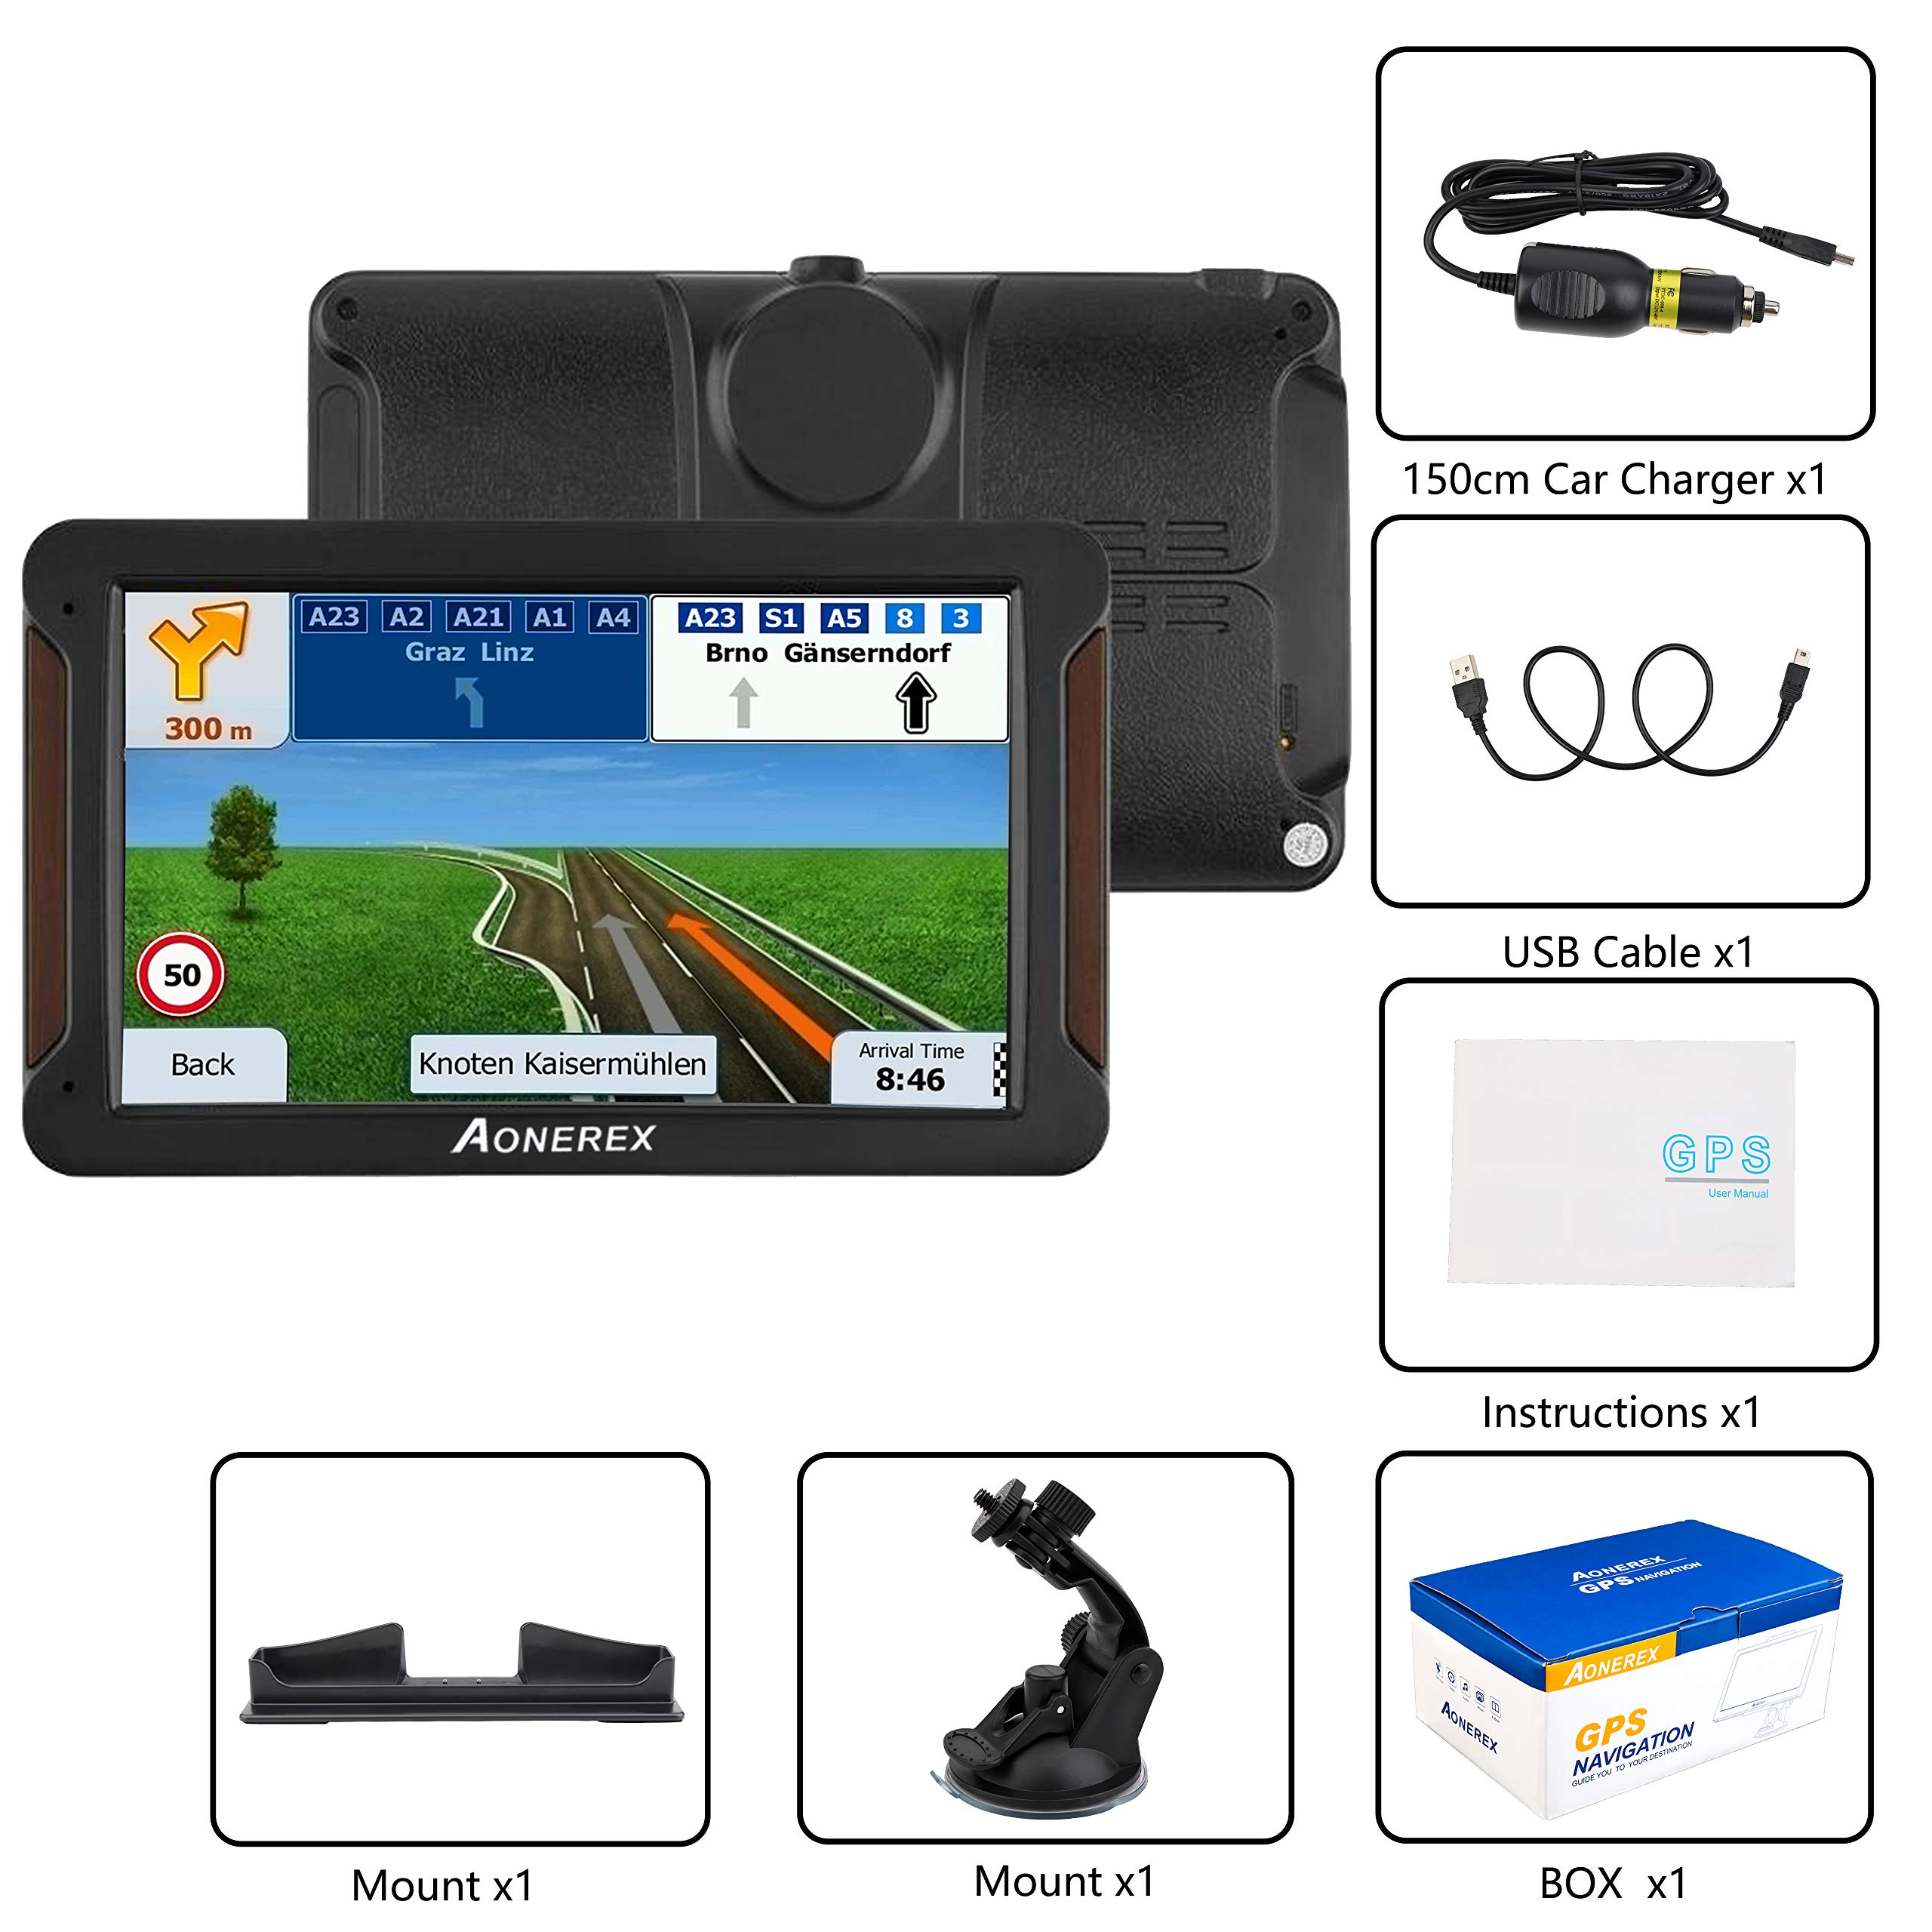 AONEREX GPS Navigation 7inch HD-8GB 256Mb Car GPS Navigation, Voice Traffic Warning,Speed Limit Reminder Satellite Navigation System with Non-Slip Car Bracket Holder-Lifetime Free Map Updates by Aonerex (Image #7)